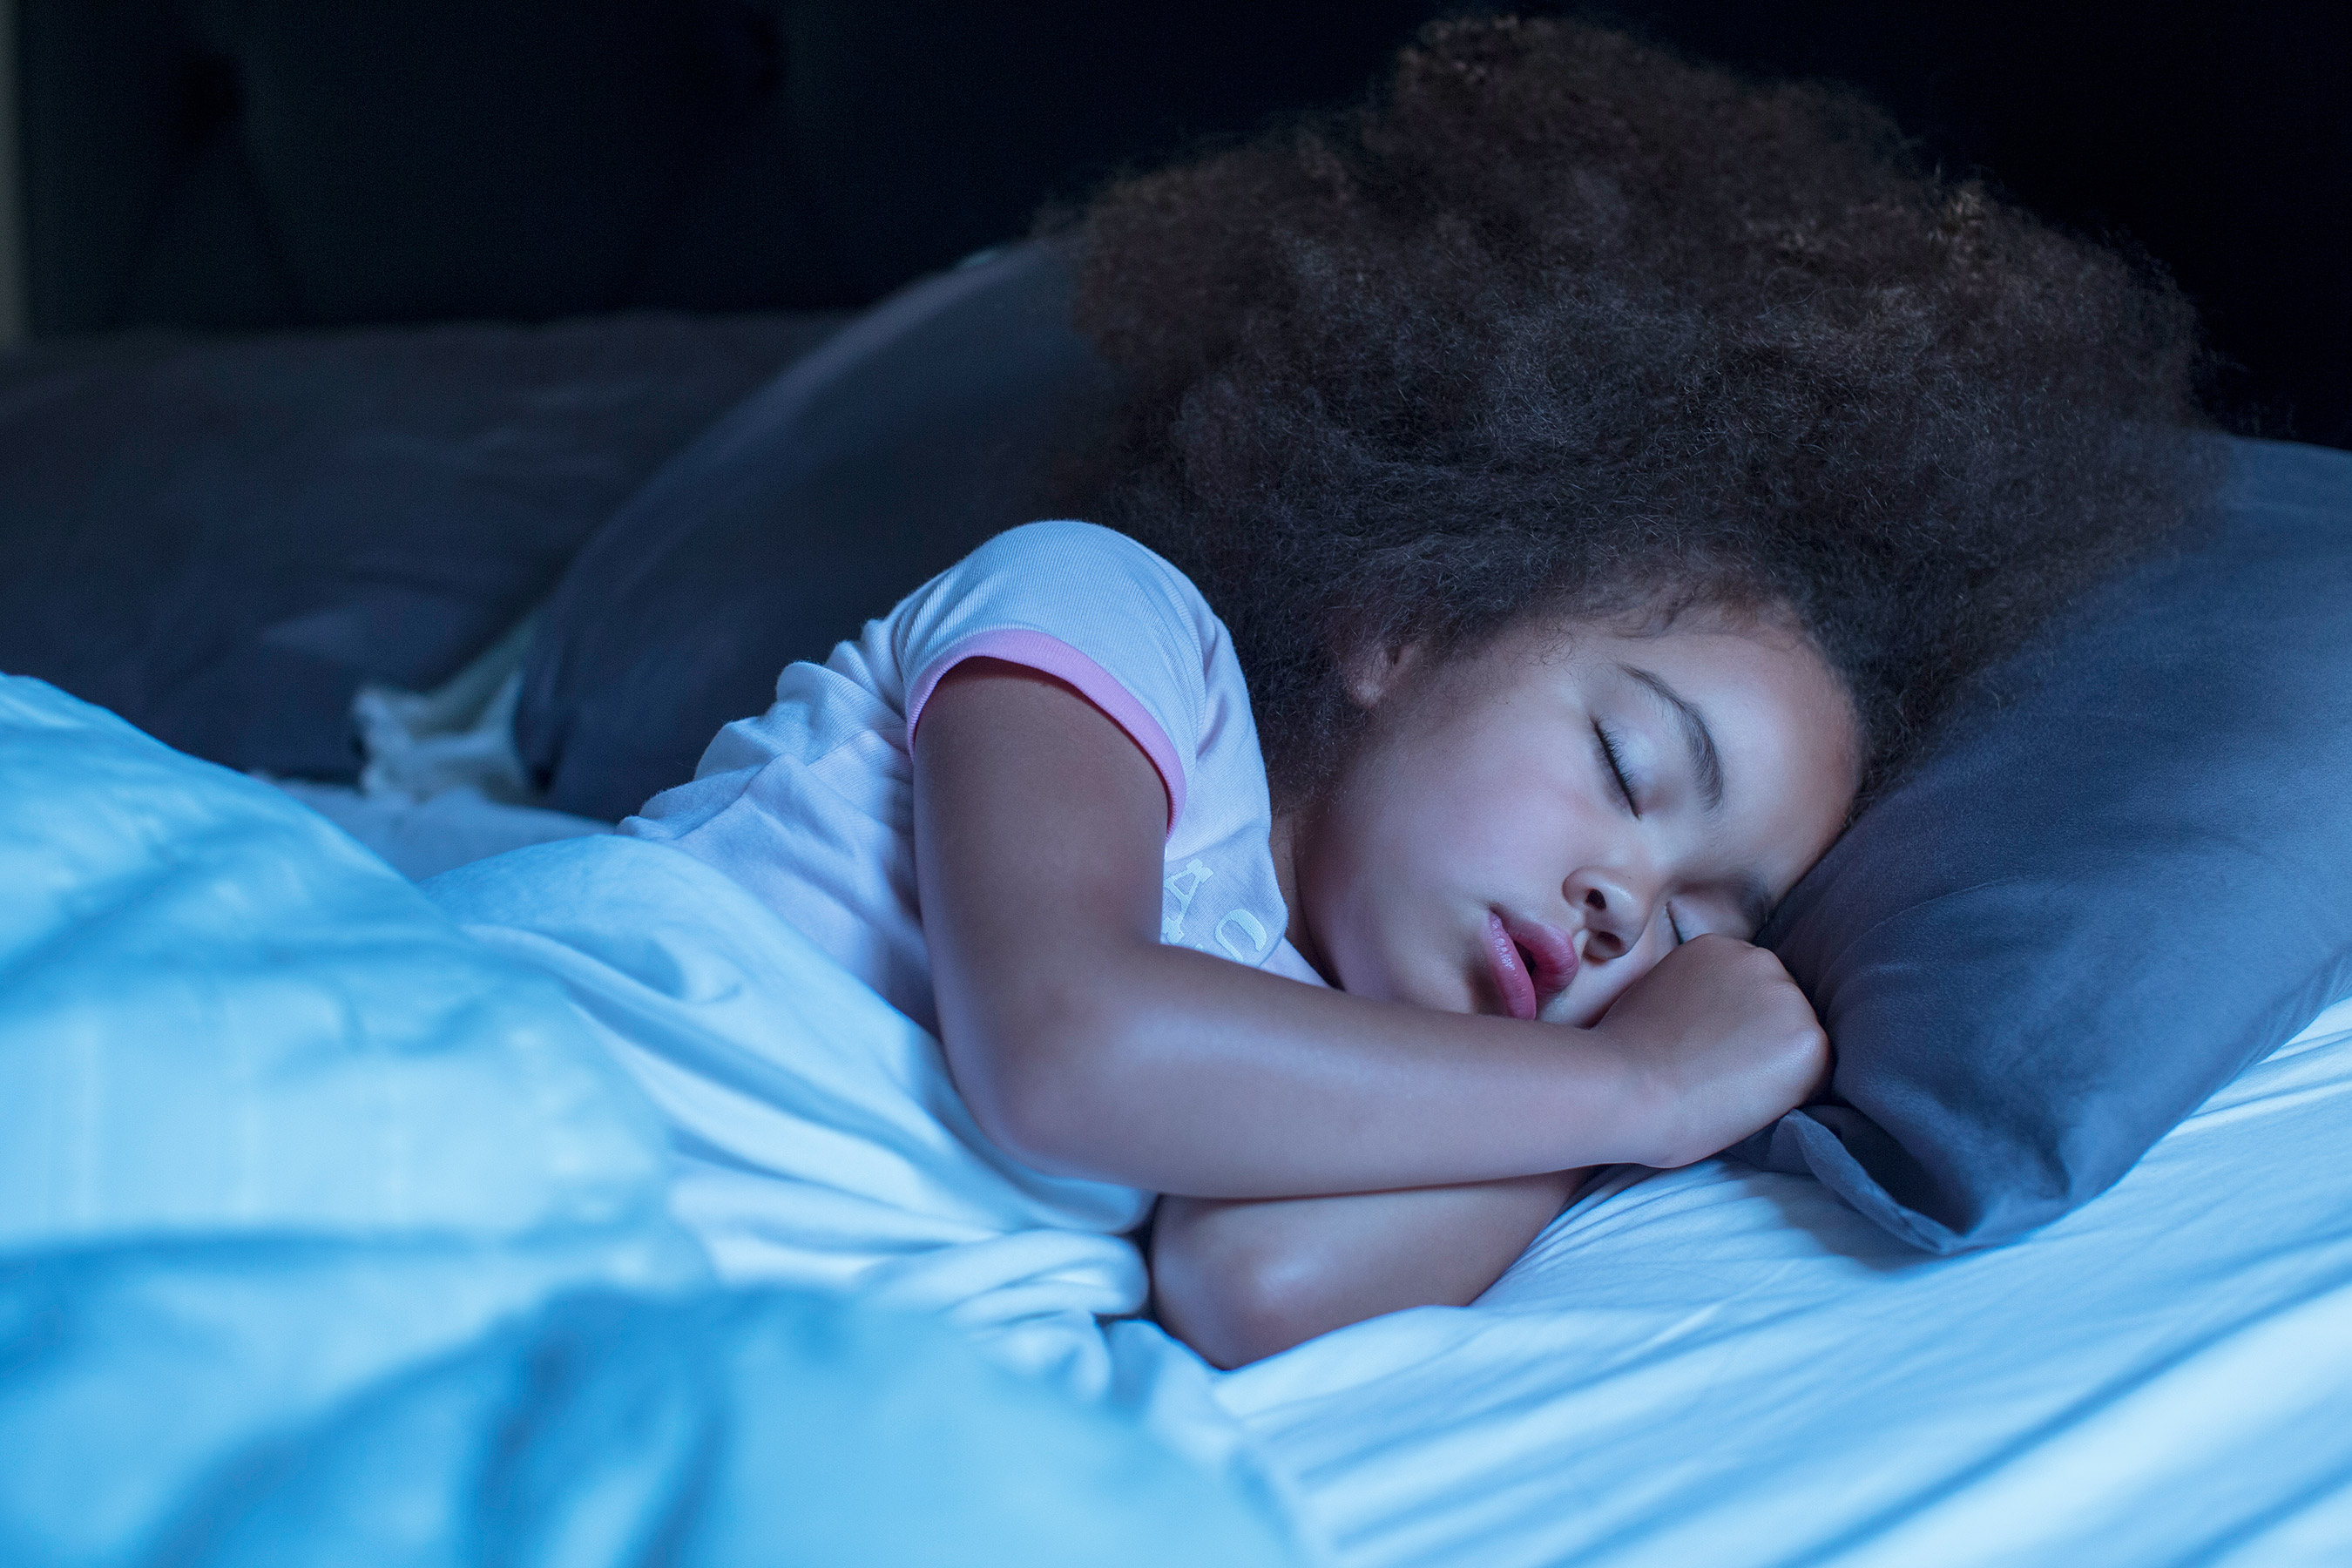 What's the best shading lighting for sleep